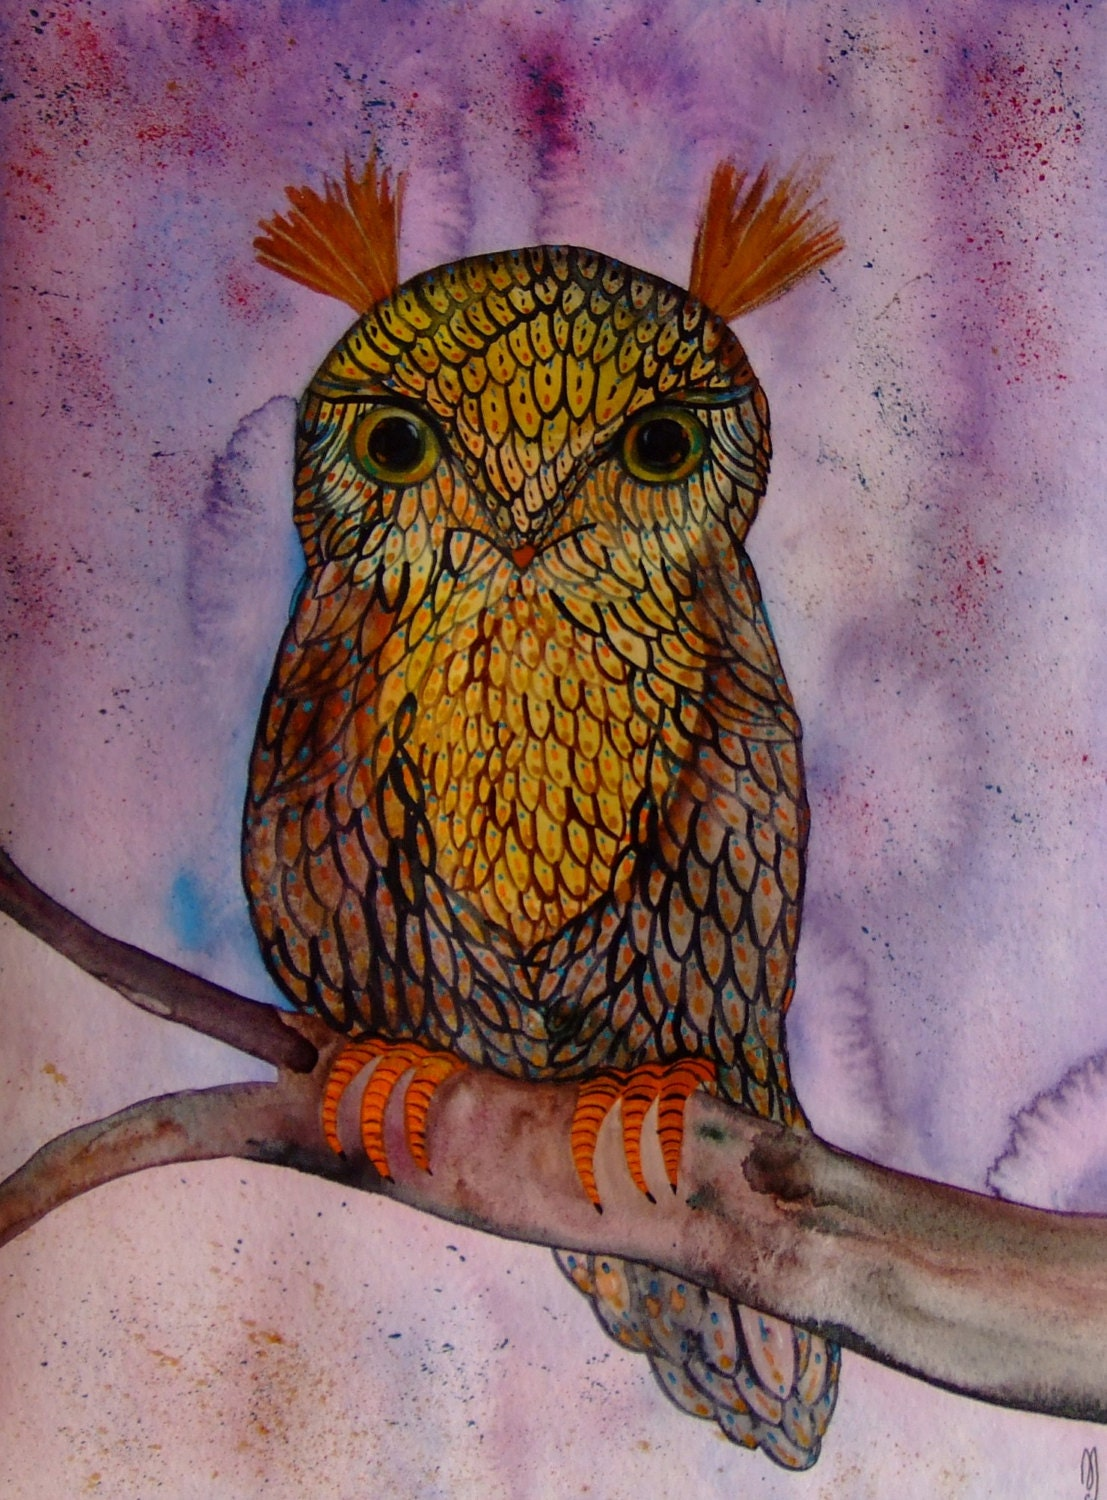 Owl Painting Watercolor Ink Bird Landscape Owl Decor Brown Purple Bird Modern Art Contemporary Art Owl Wall Art Owl Fine Art Original Bird - CelineArtGalerie